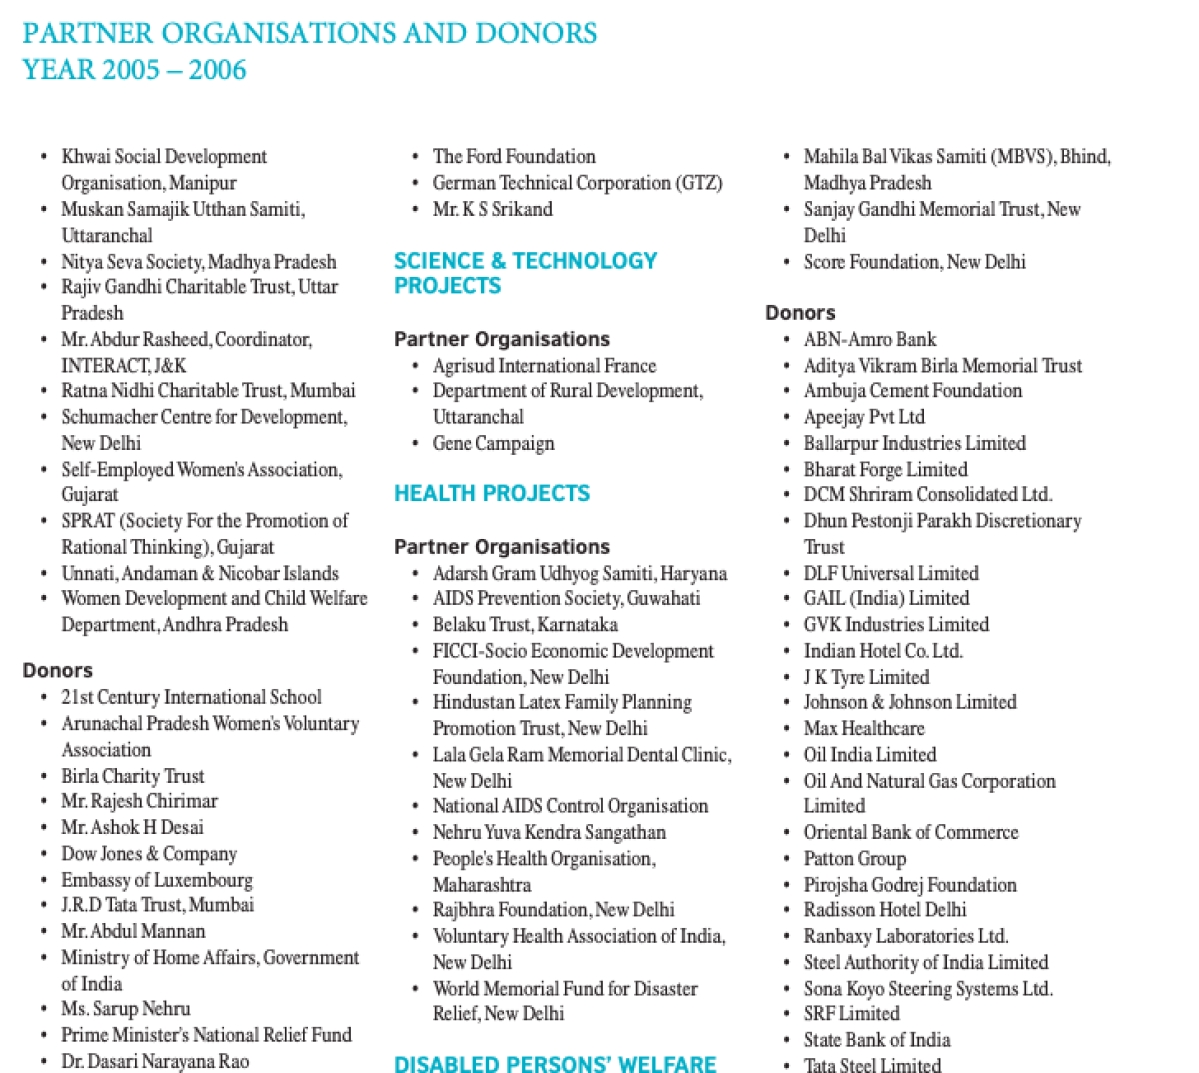 Prime Minister's National Relief Fund is listed in the first row, second from bottom in the 2005-06 annual report